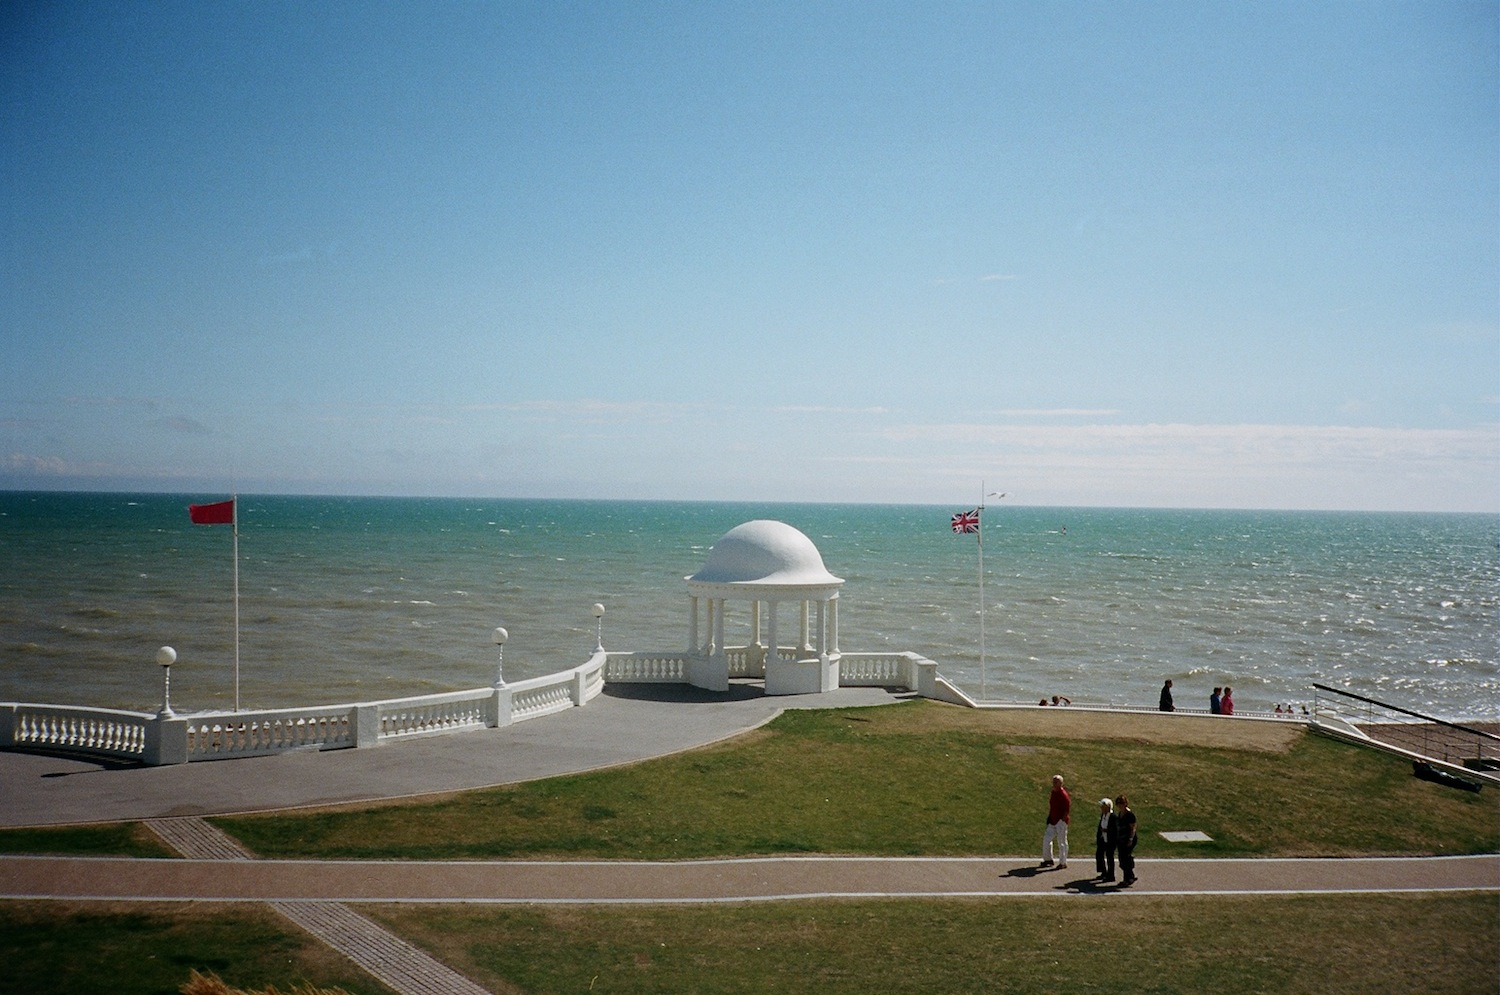 View from The De La Warr Pavilion. Photograph: Anastasiia Fedorova